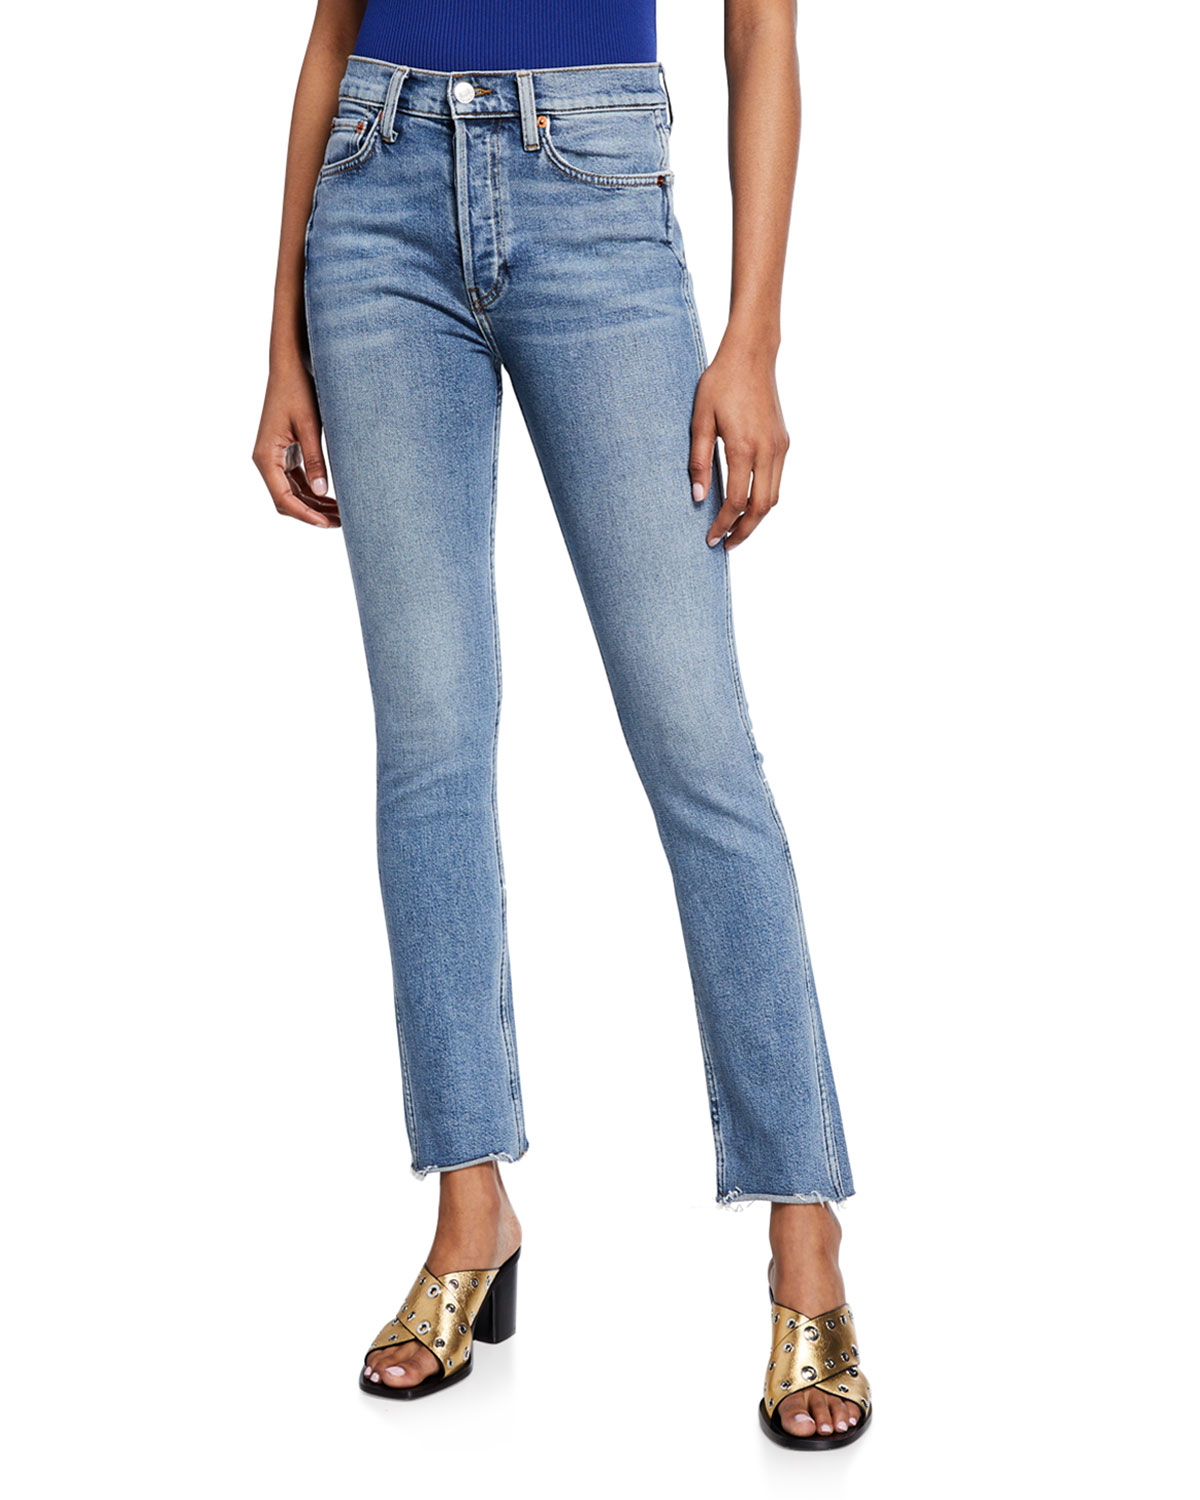 Needle Raw Straight With Marcus Double Redone Jeans HemNeiman Long nvywO8m0N